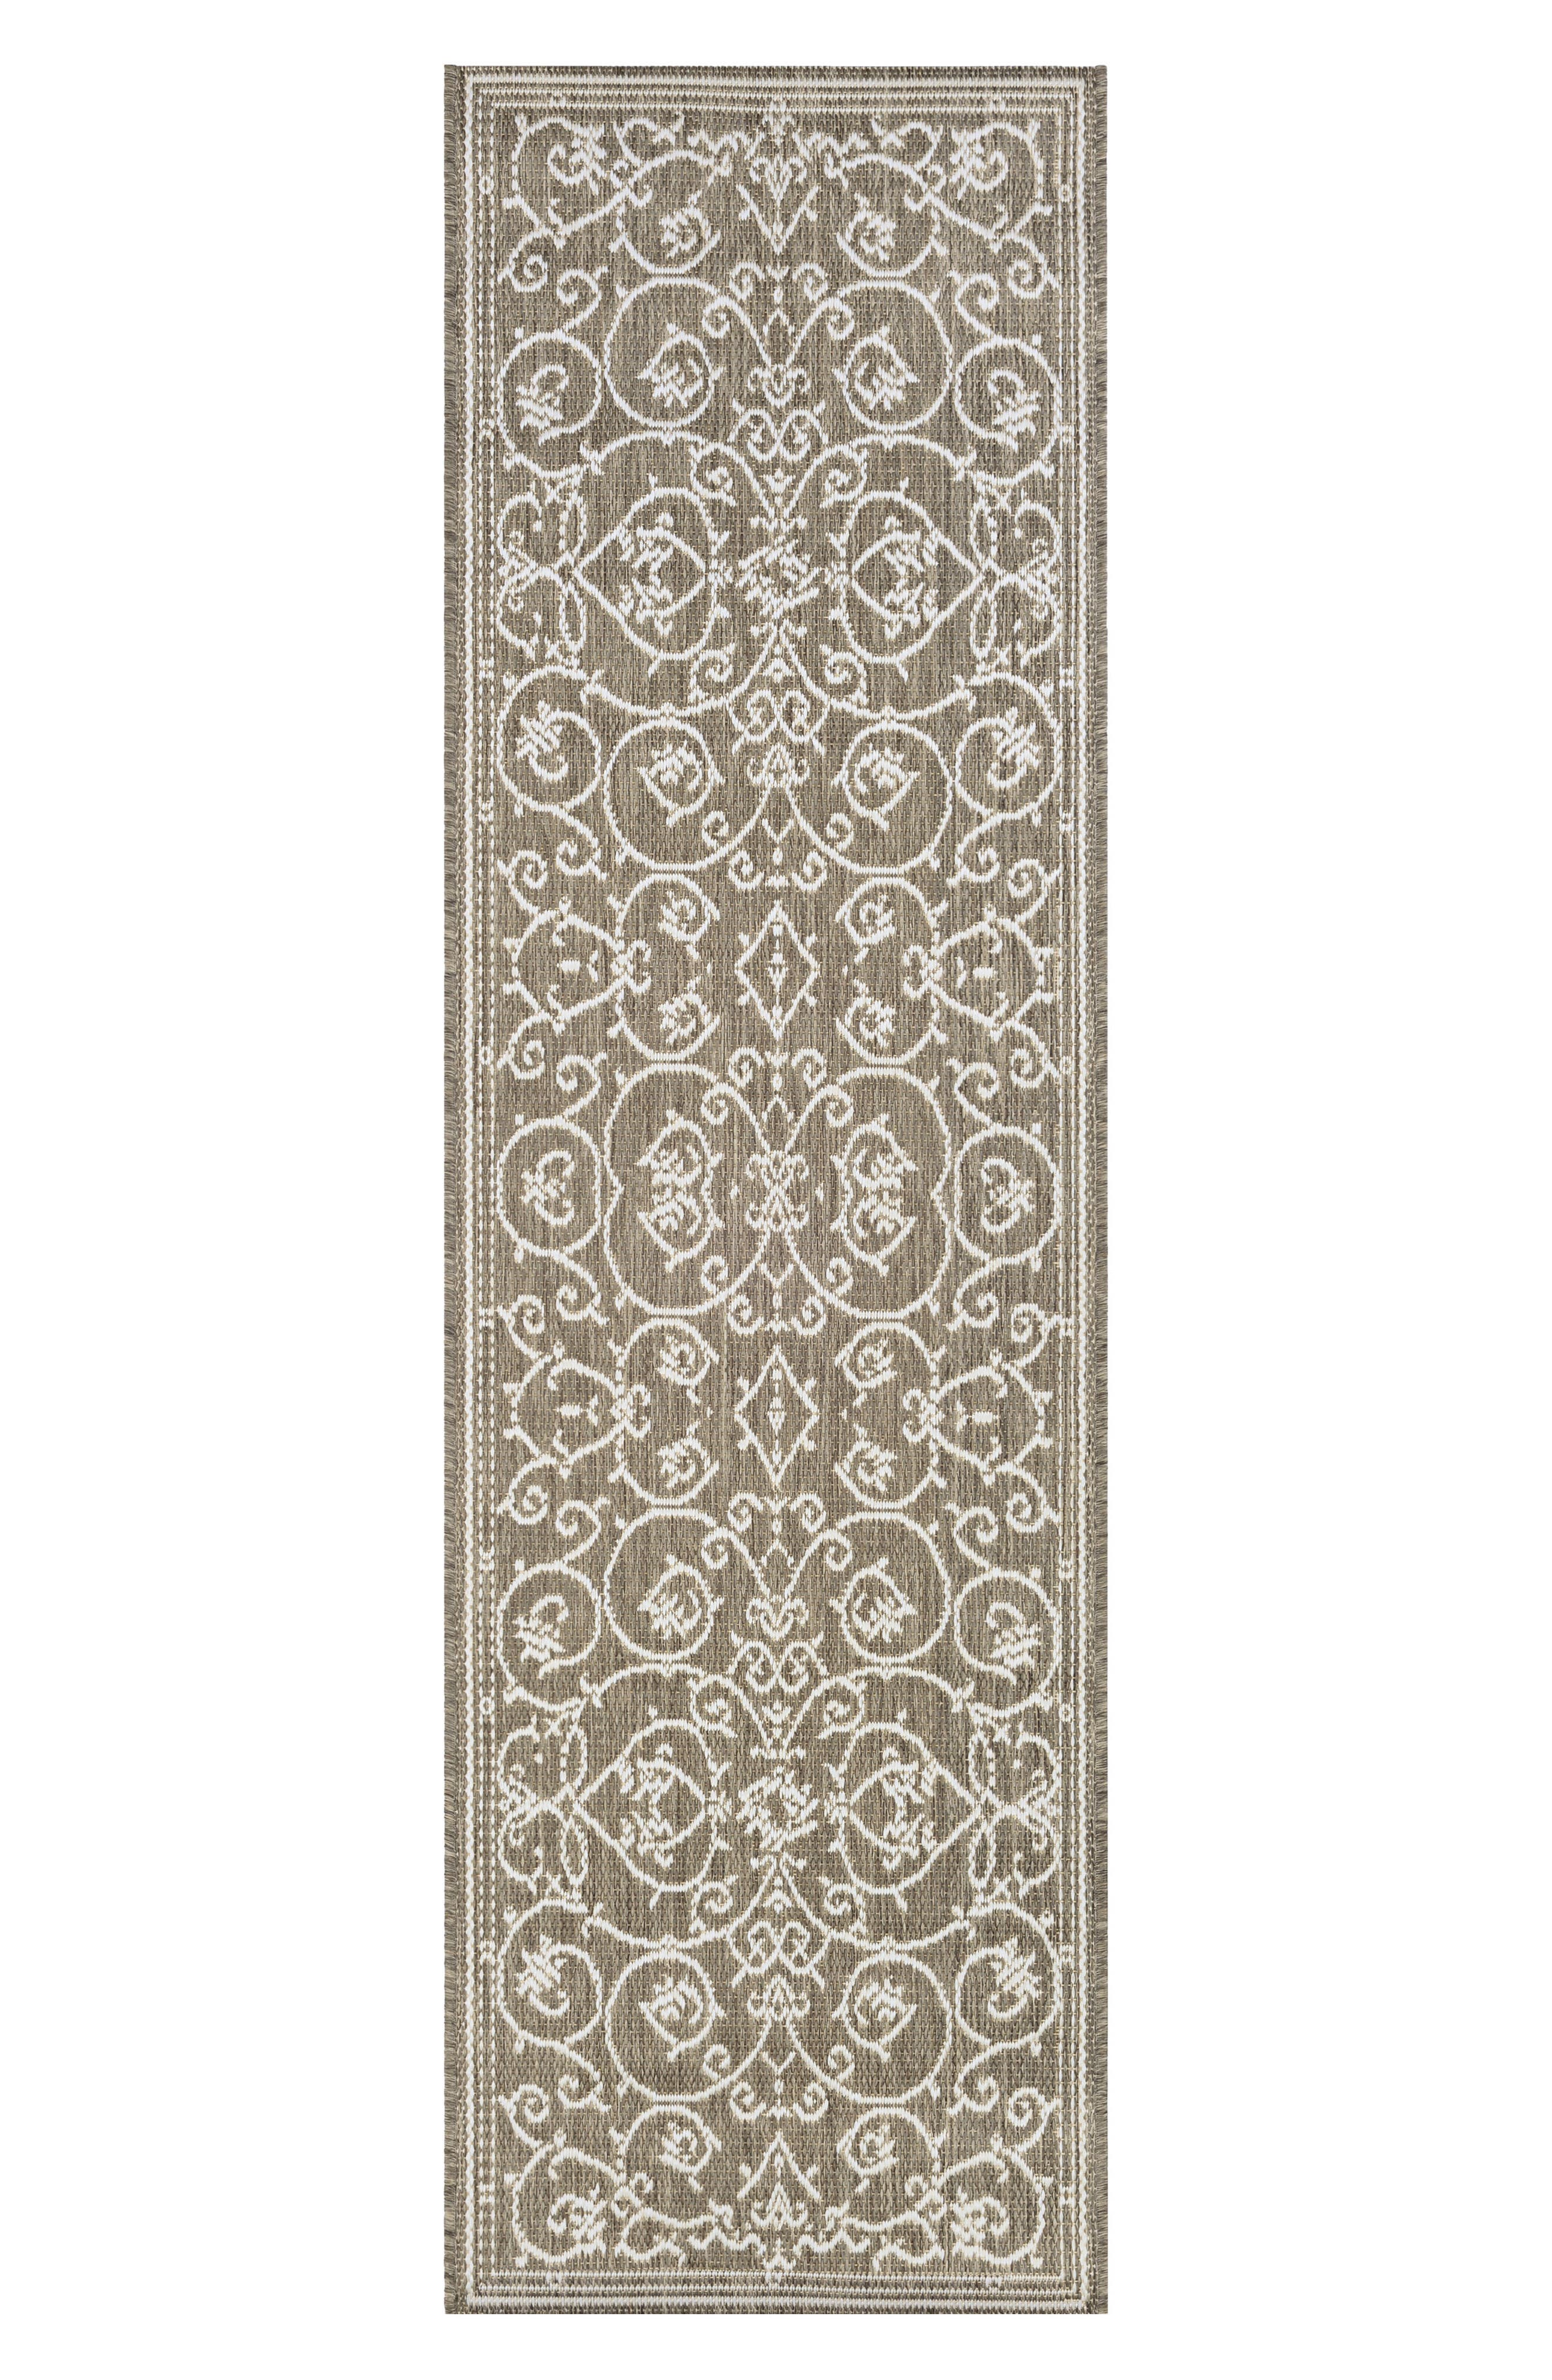 Veranda Indoor/Outdoor Rug,                             Alternate thumbnail 2, color,                             Champagne/ Taupe